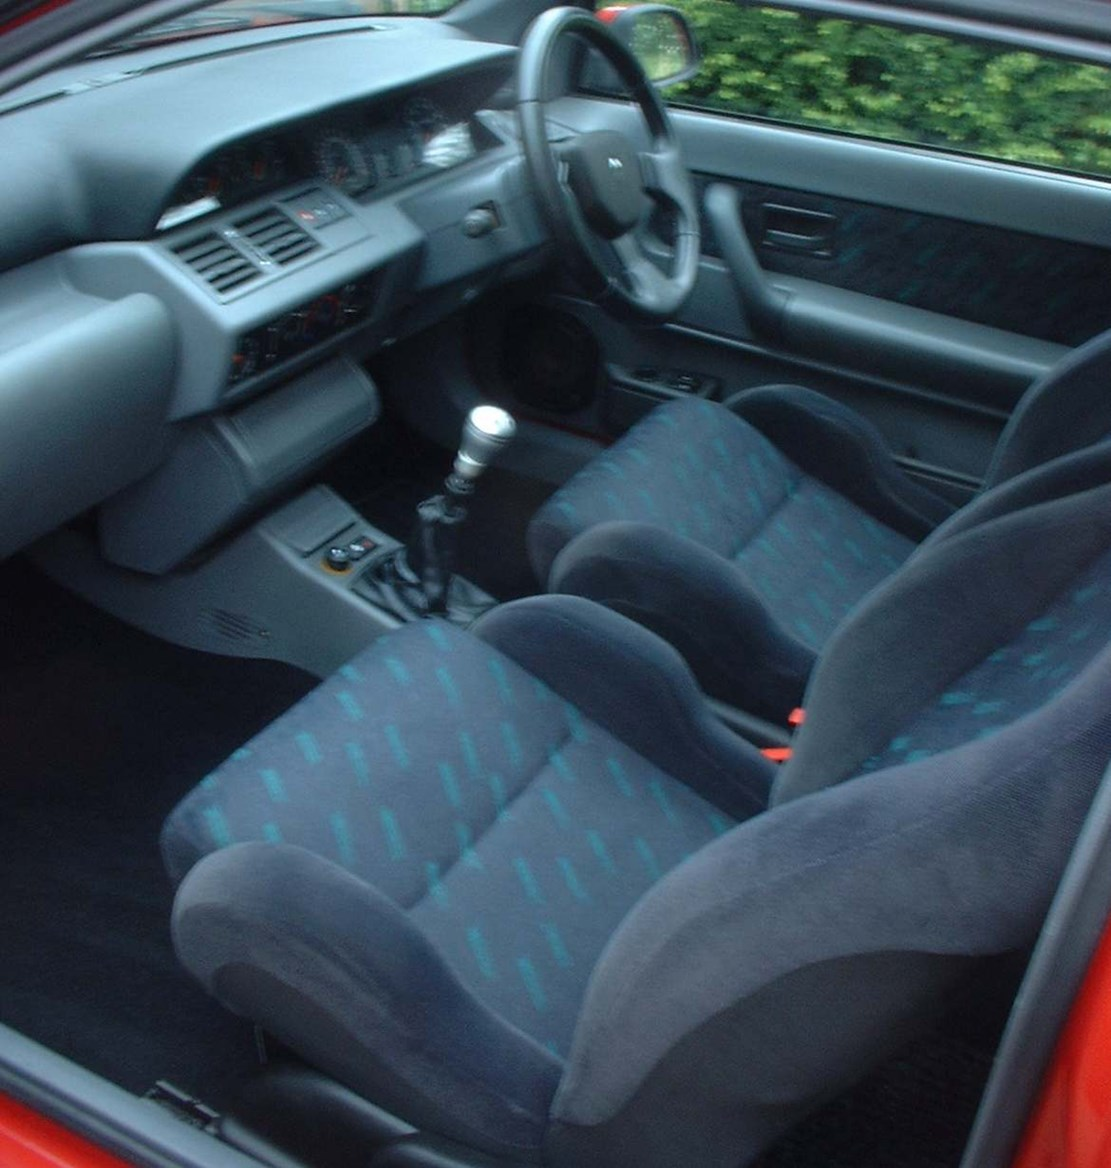 Renault Clio Hatchback Review (1991 - 1998)